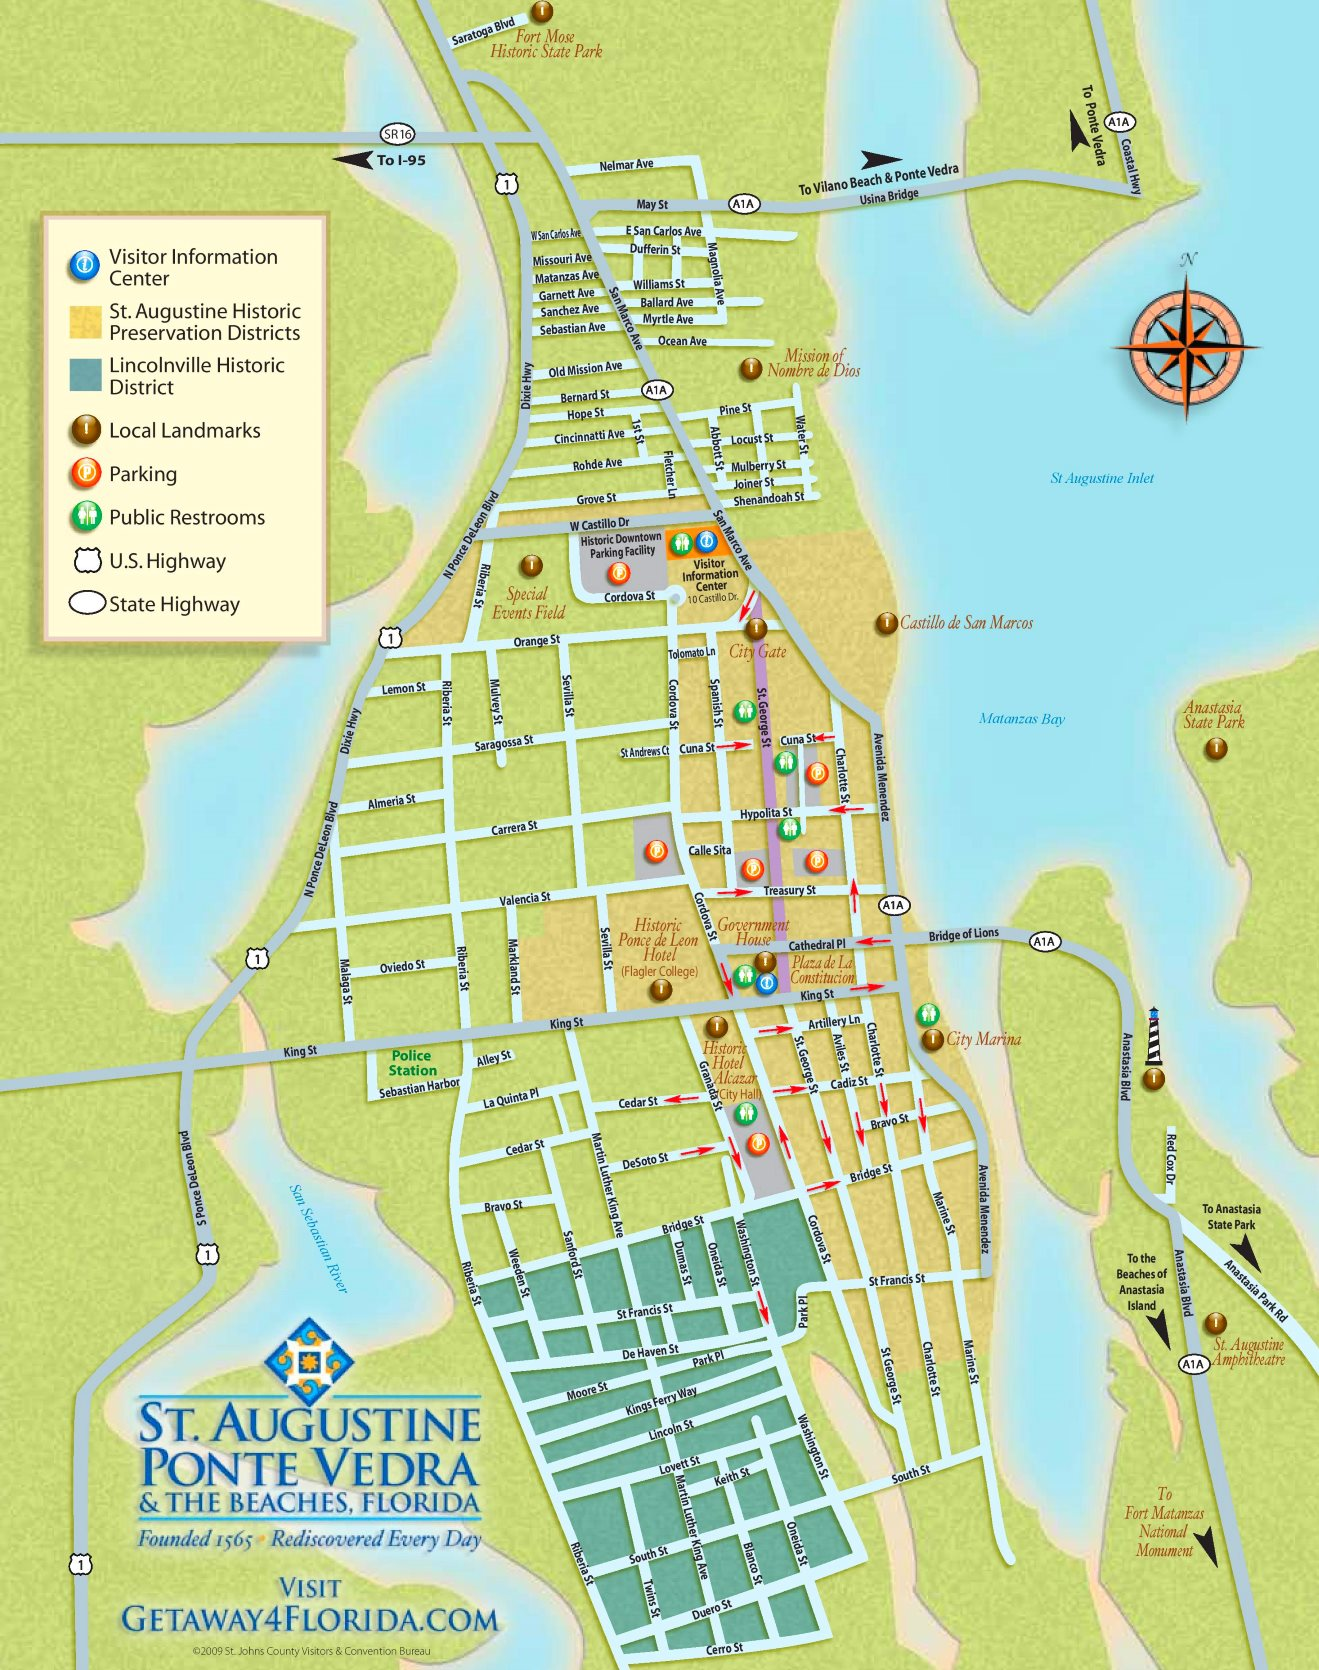 st-augustine-tourist-map Saint Augustine Map Of Area on map of port orange area, map of north port area, map of palm coast area, map of oxford ms area, map of lake worth area, map of ellijay ga area, map of cabo san lucas area, map of fernandina beach area, map of st. louis area, map of spring hill area, map of hutchinson ks area, map of new port richey area, map of petersburg va area, map of crystal river area, map of fort walton beach area, map of salisbury md area, map of temple tx area, map of eastern oregon area, map of chicago o'hare area, map of mount dora area,